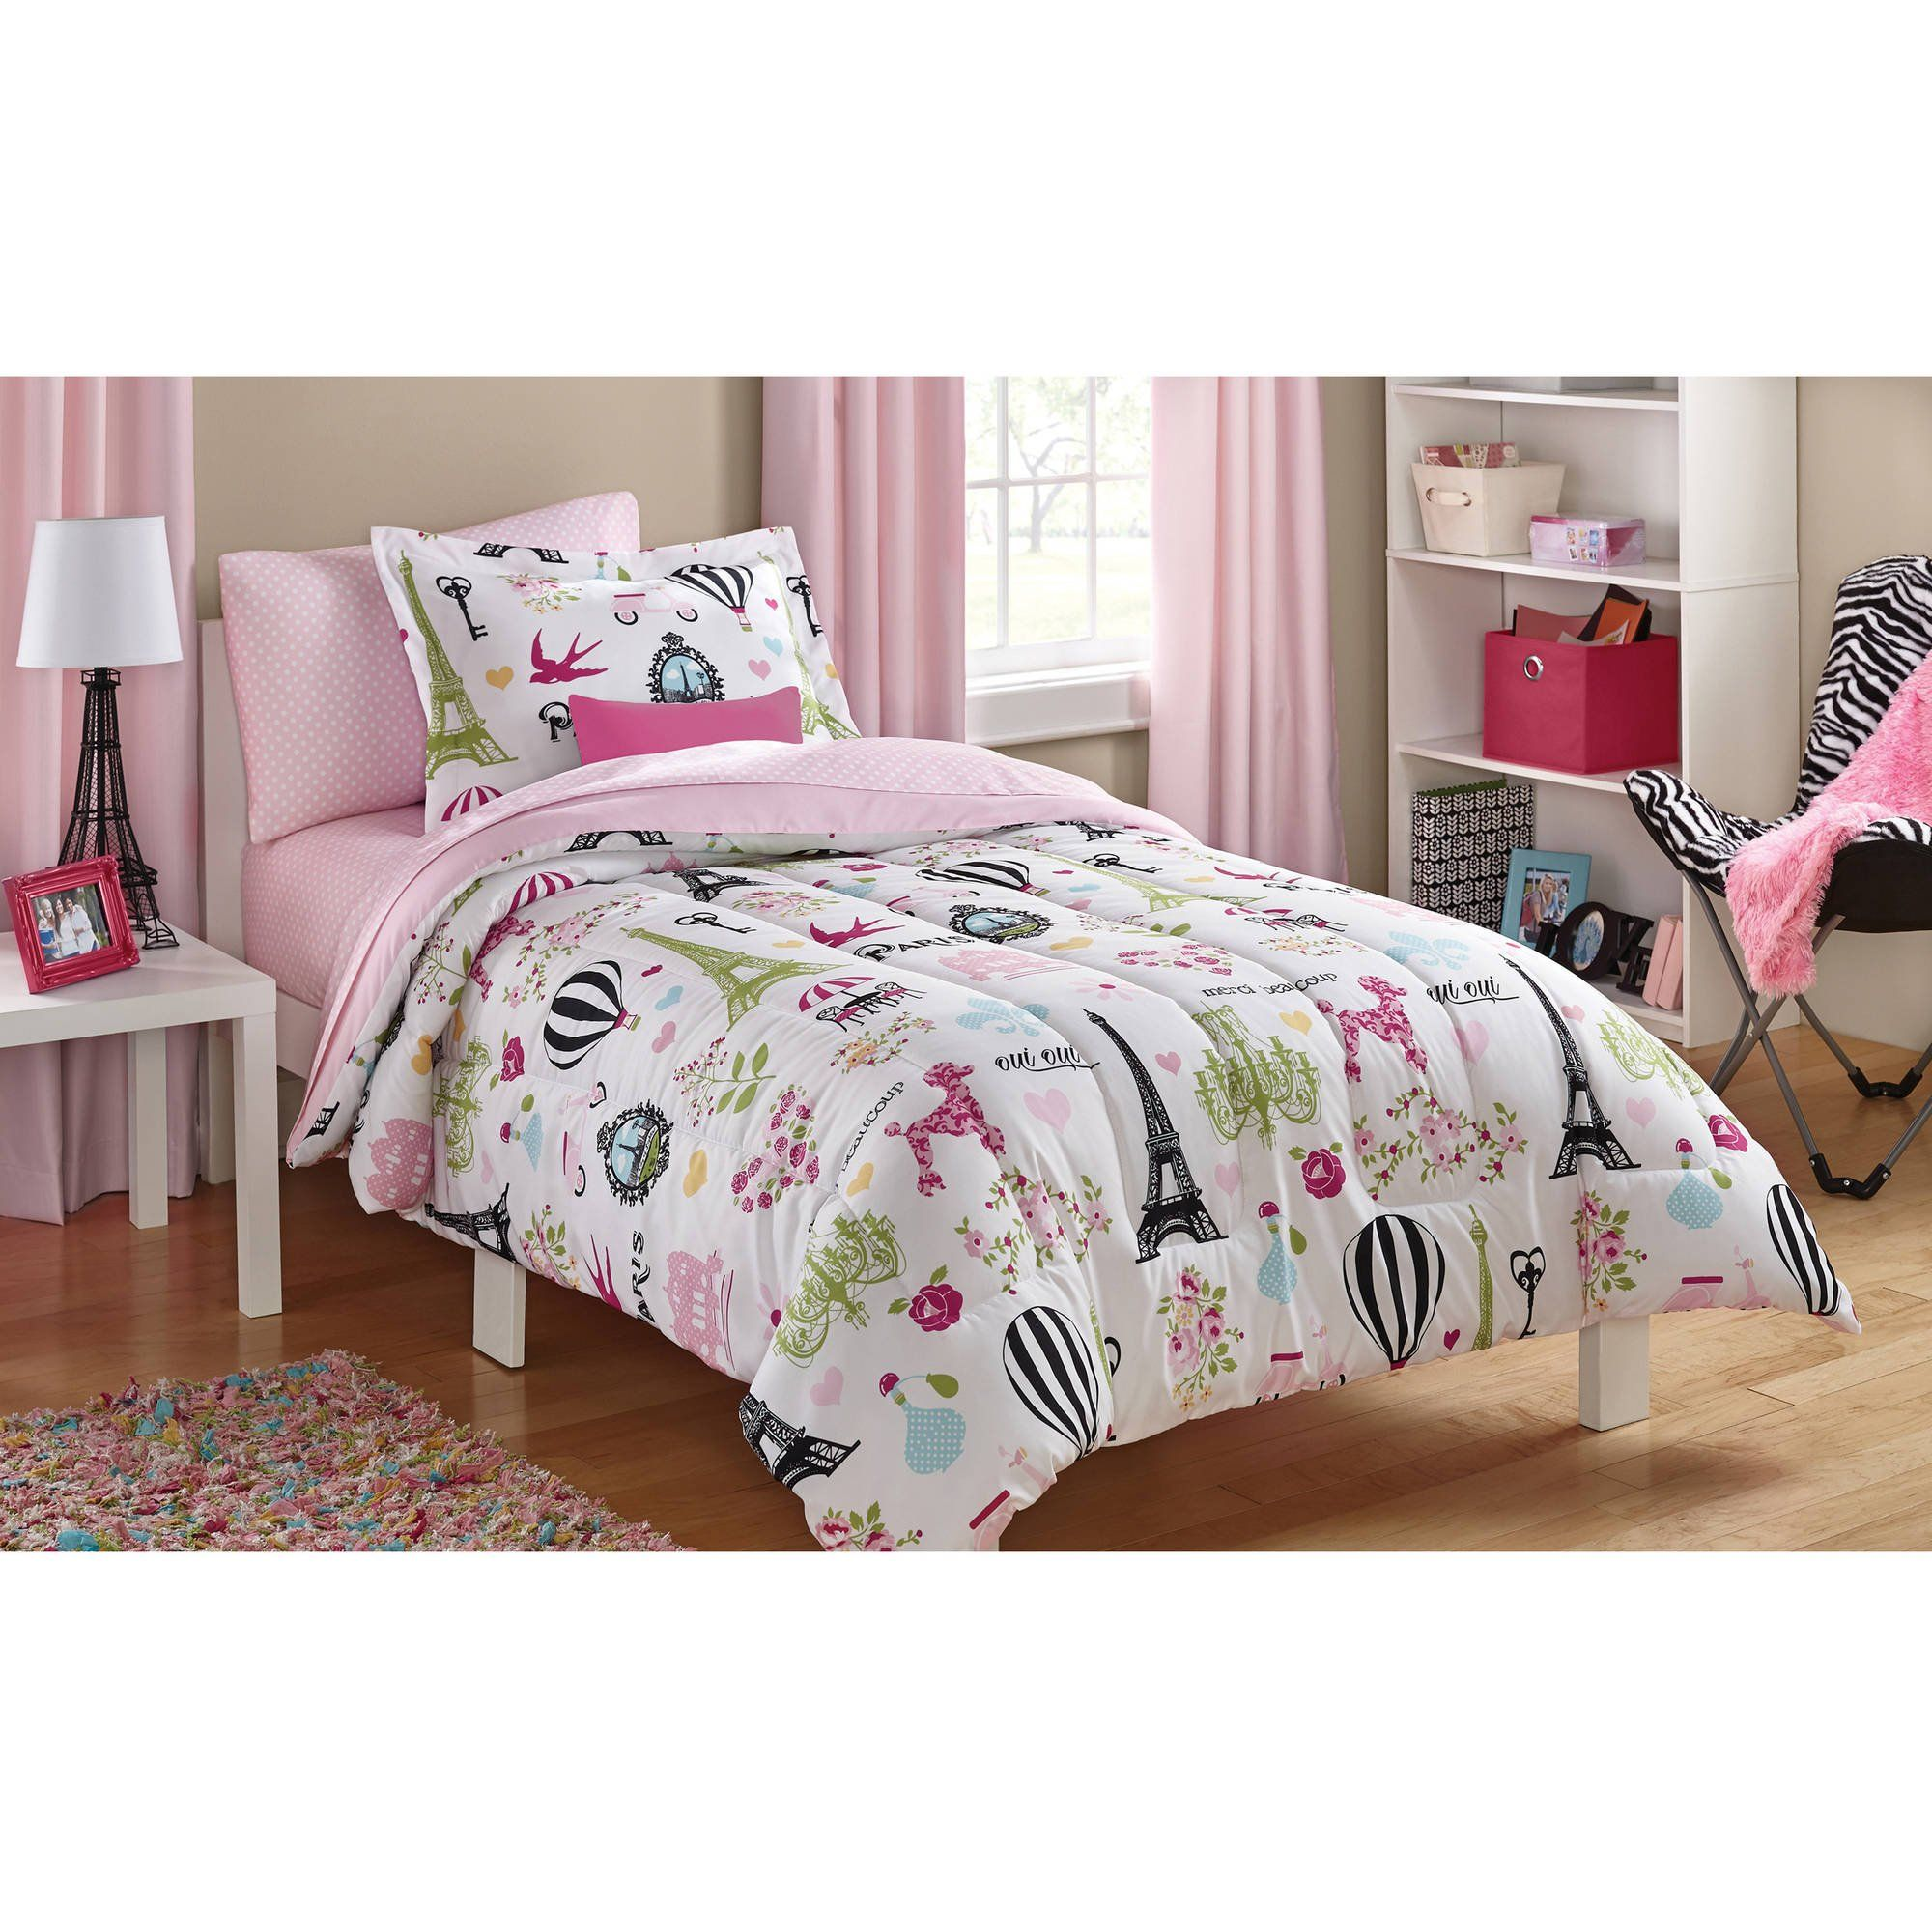 bed pink twin and design of bedding green image set comforter lostcoastshuttle